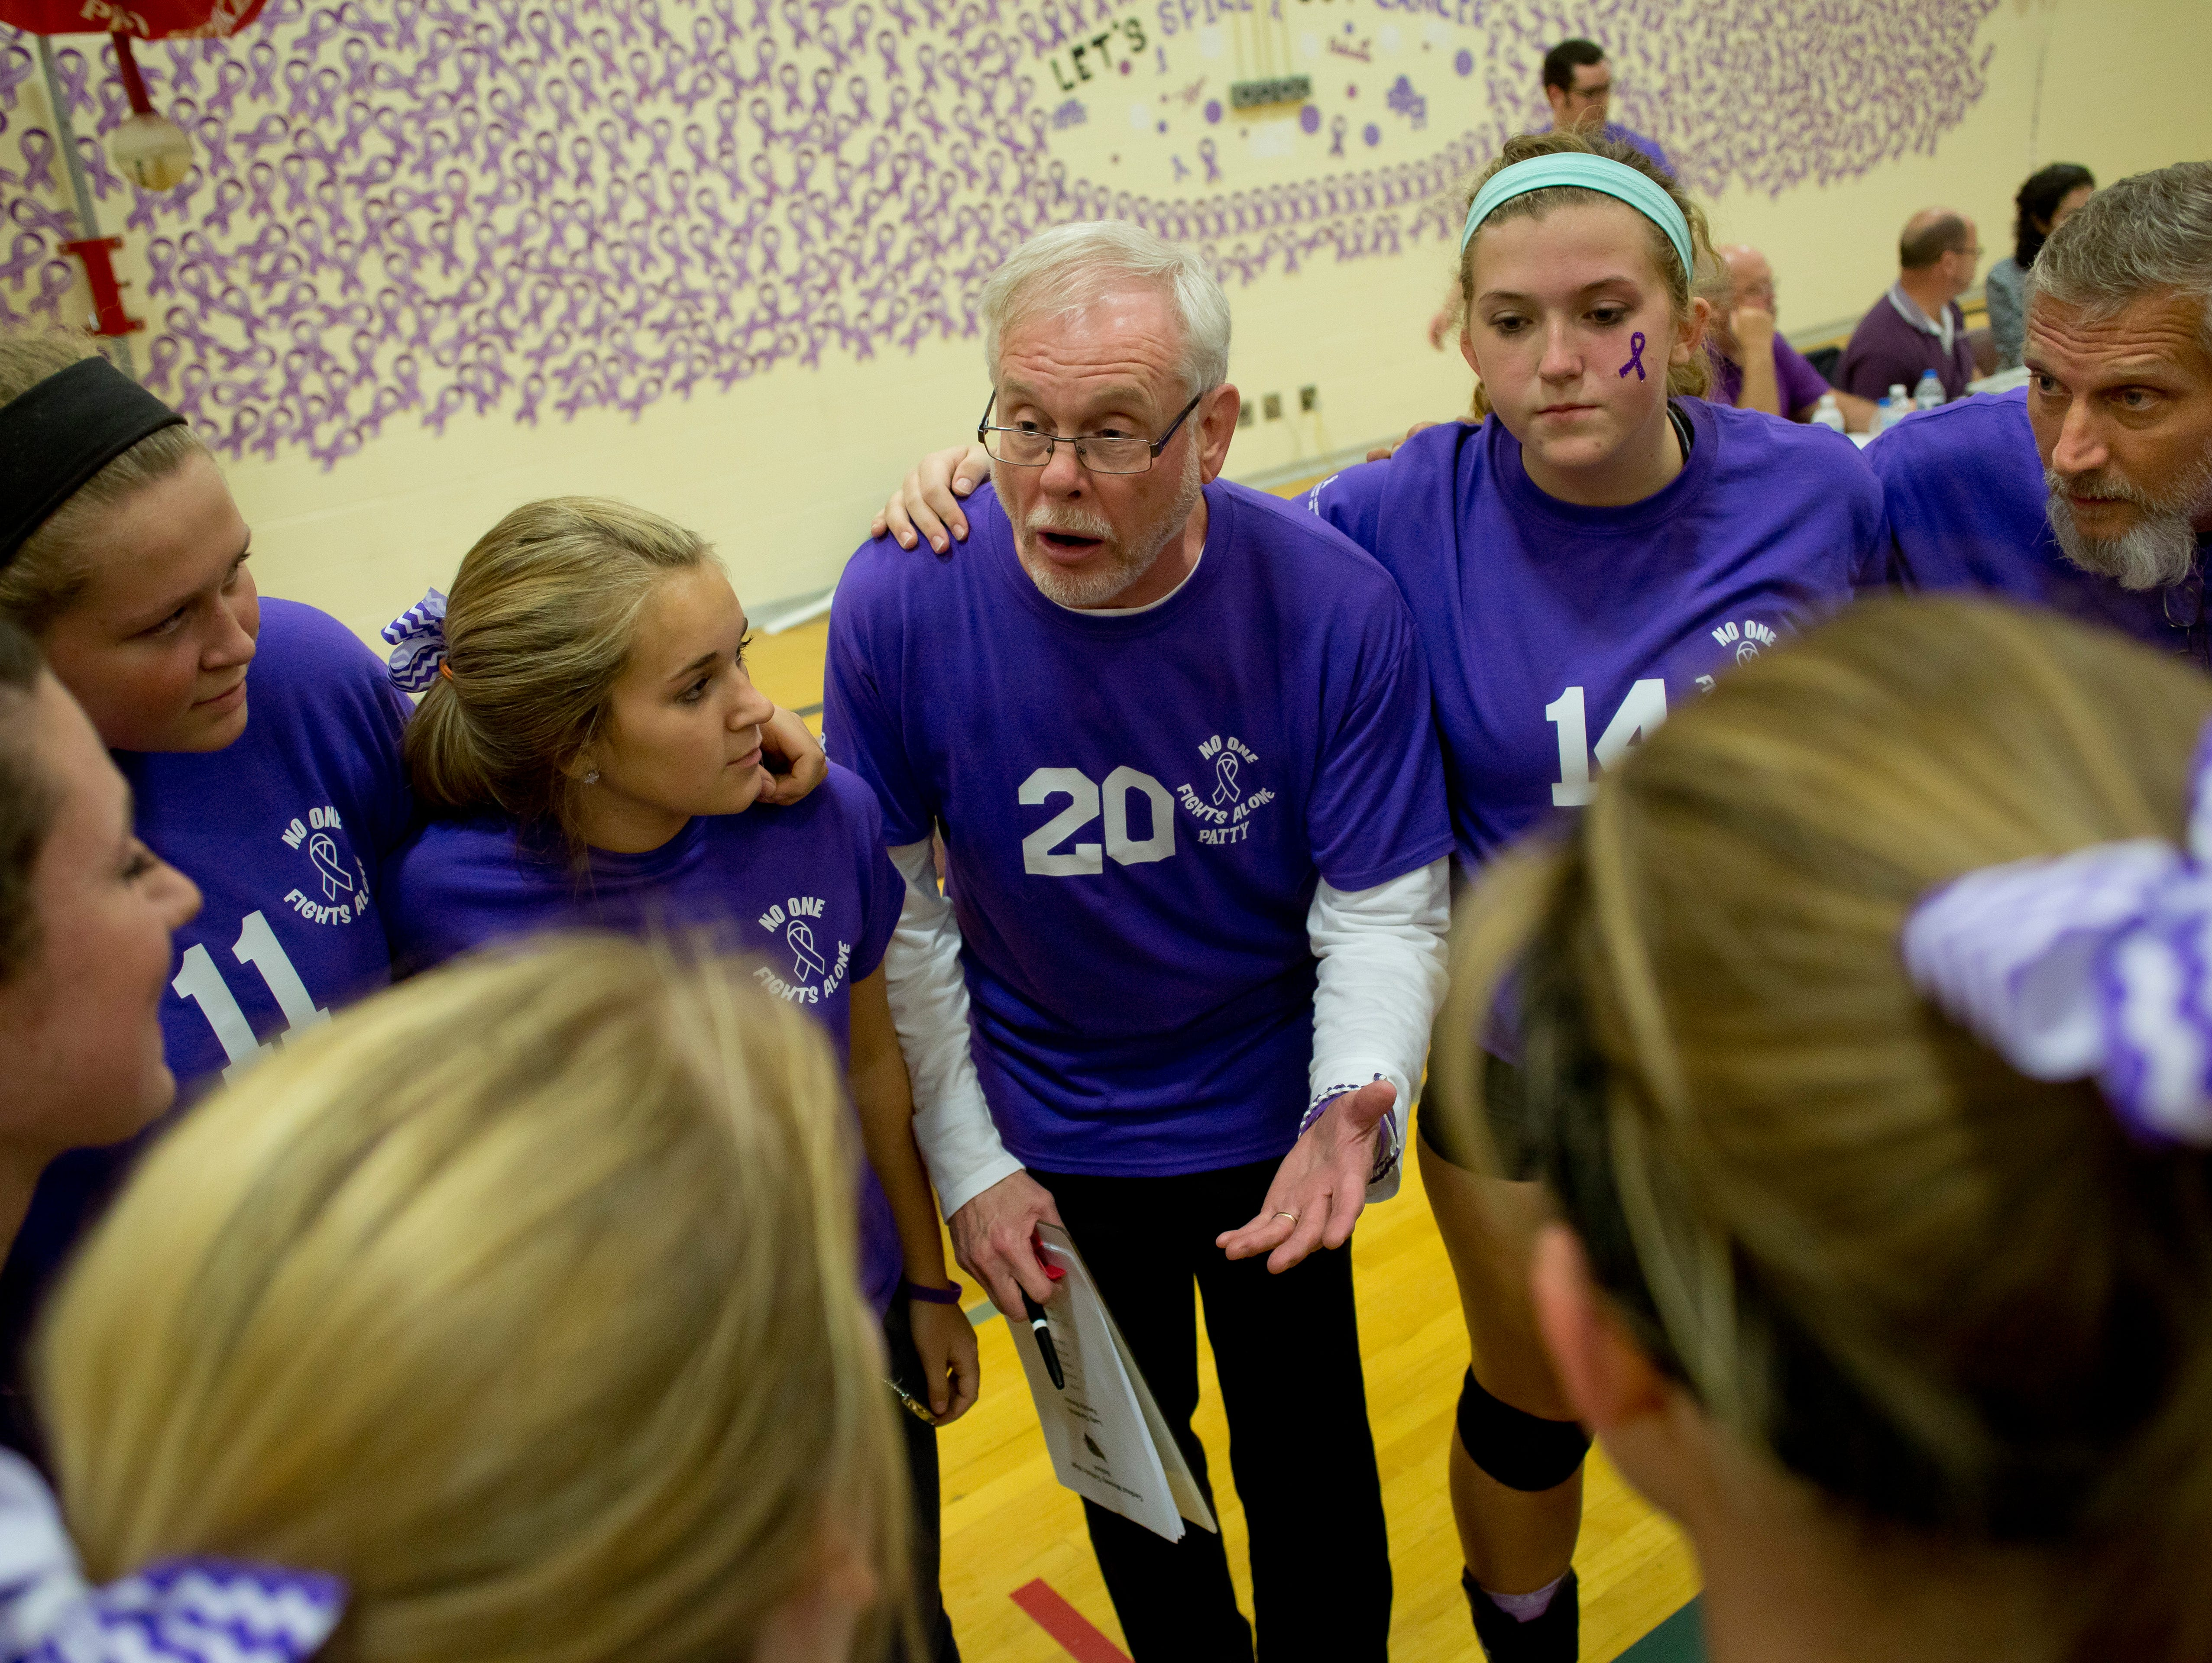 Cardinal Mooney coach Dennis Caulfield talks with players in a huddle during a volleyball game Wednesday, October 28, 2015 at Cardinal Mooney High School.